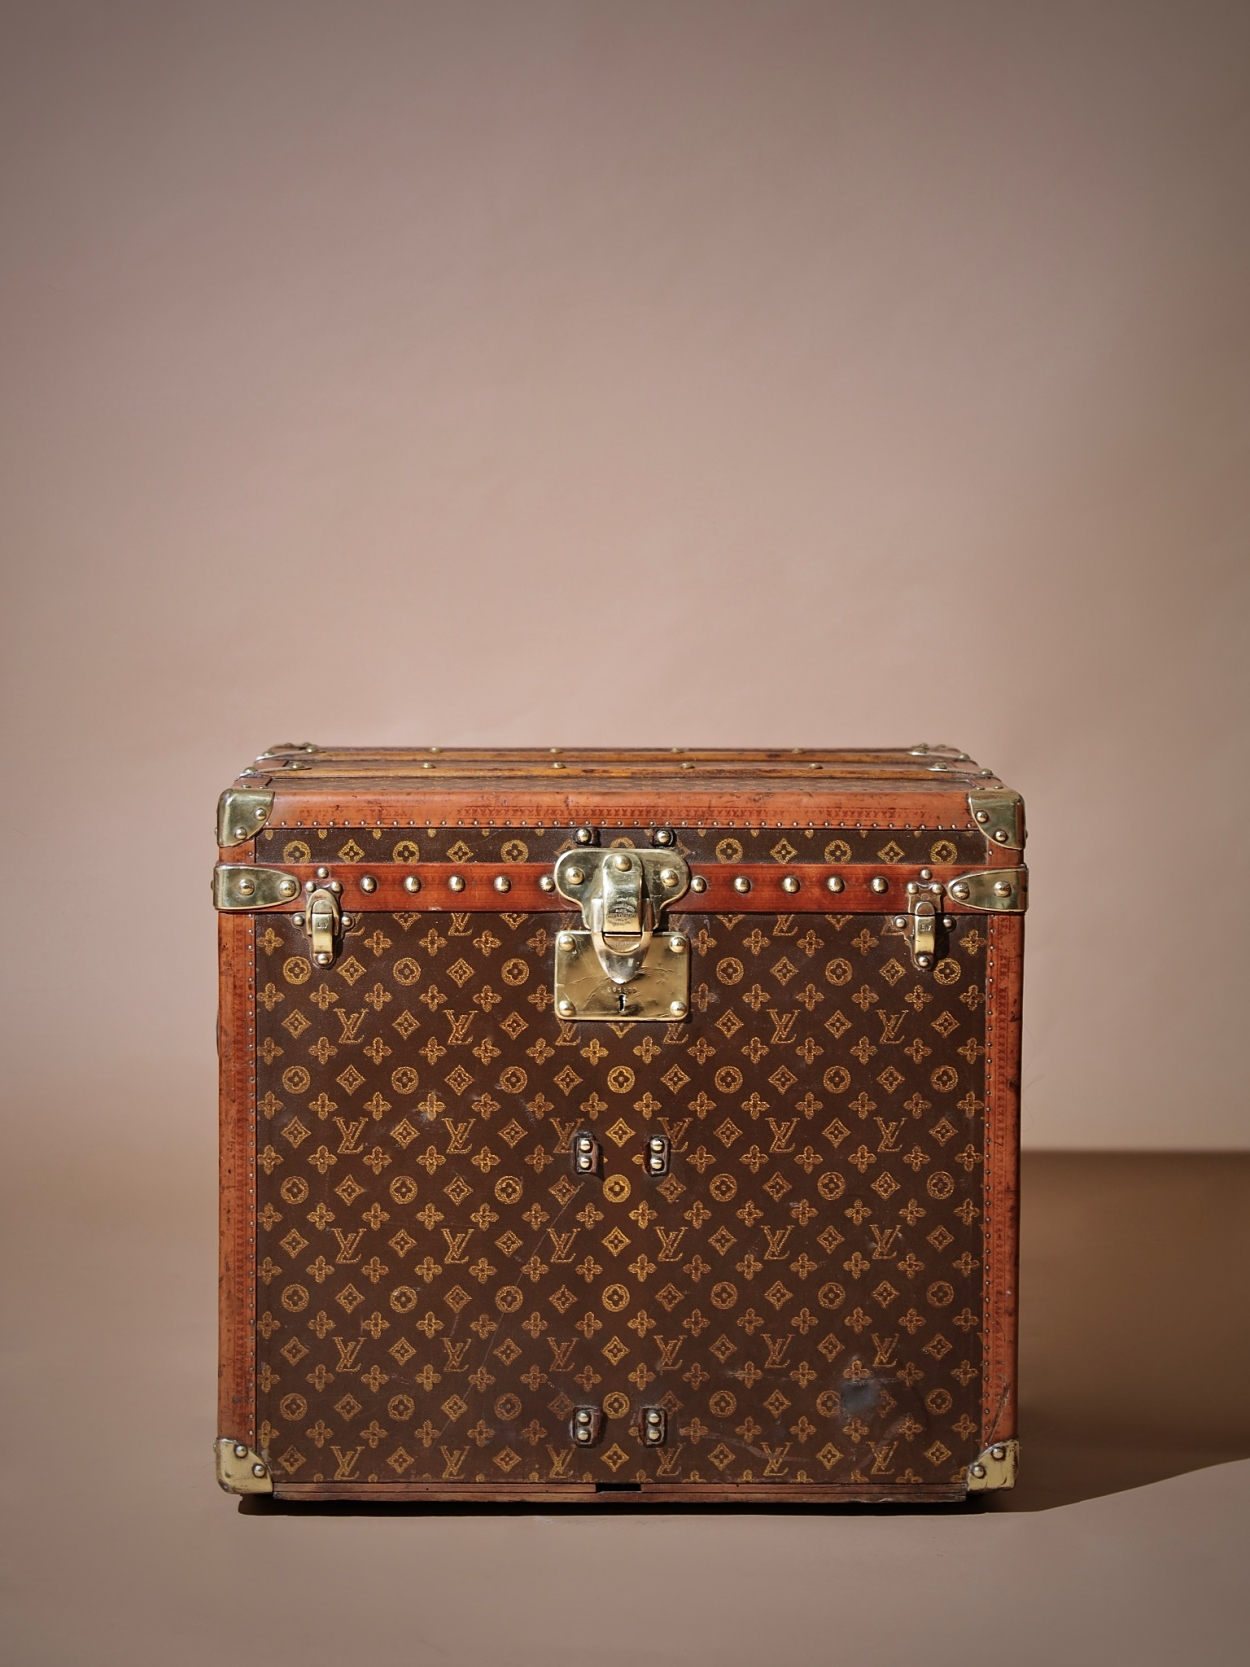 the-well-traveled-trunk-louis-vuitton-thumbnail-product-5729-1